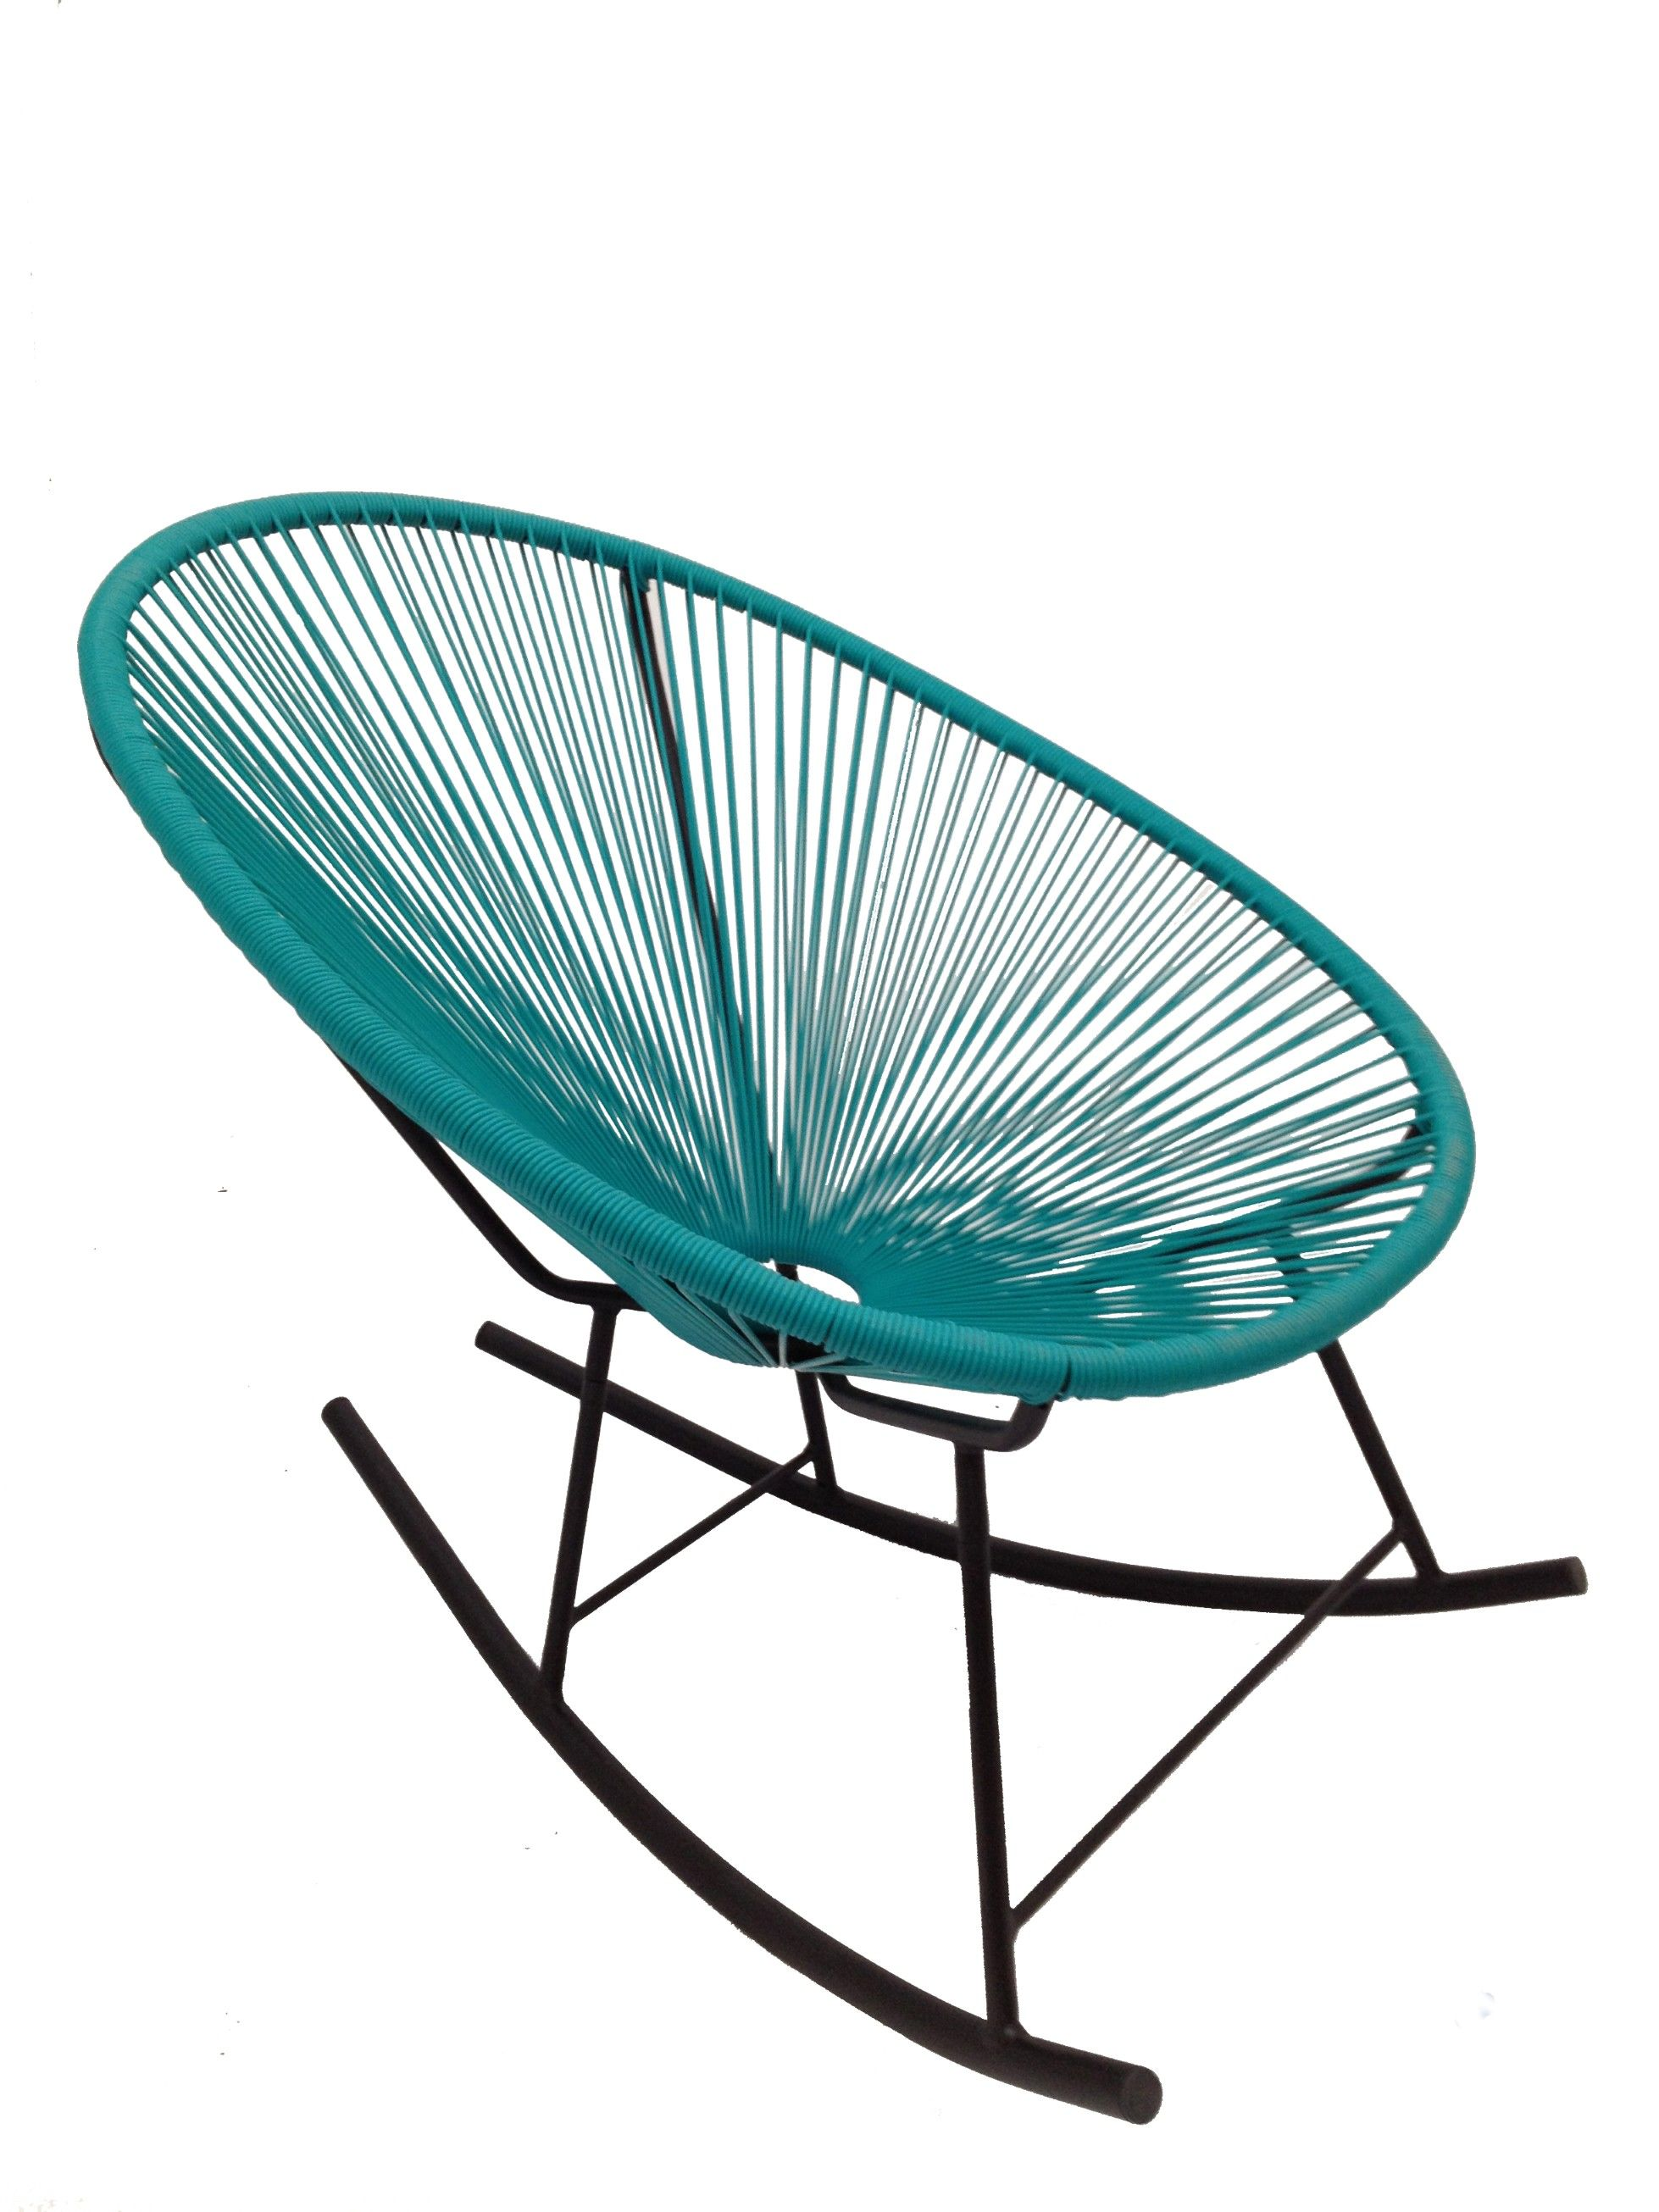 Replica Acapulco Rocking Chair - Interiors Online | cadeiras de ...